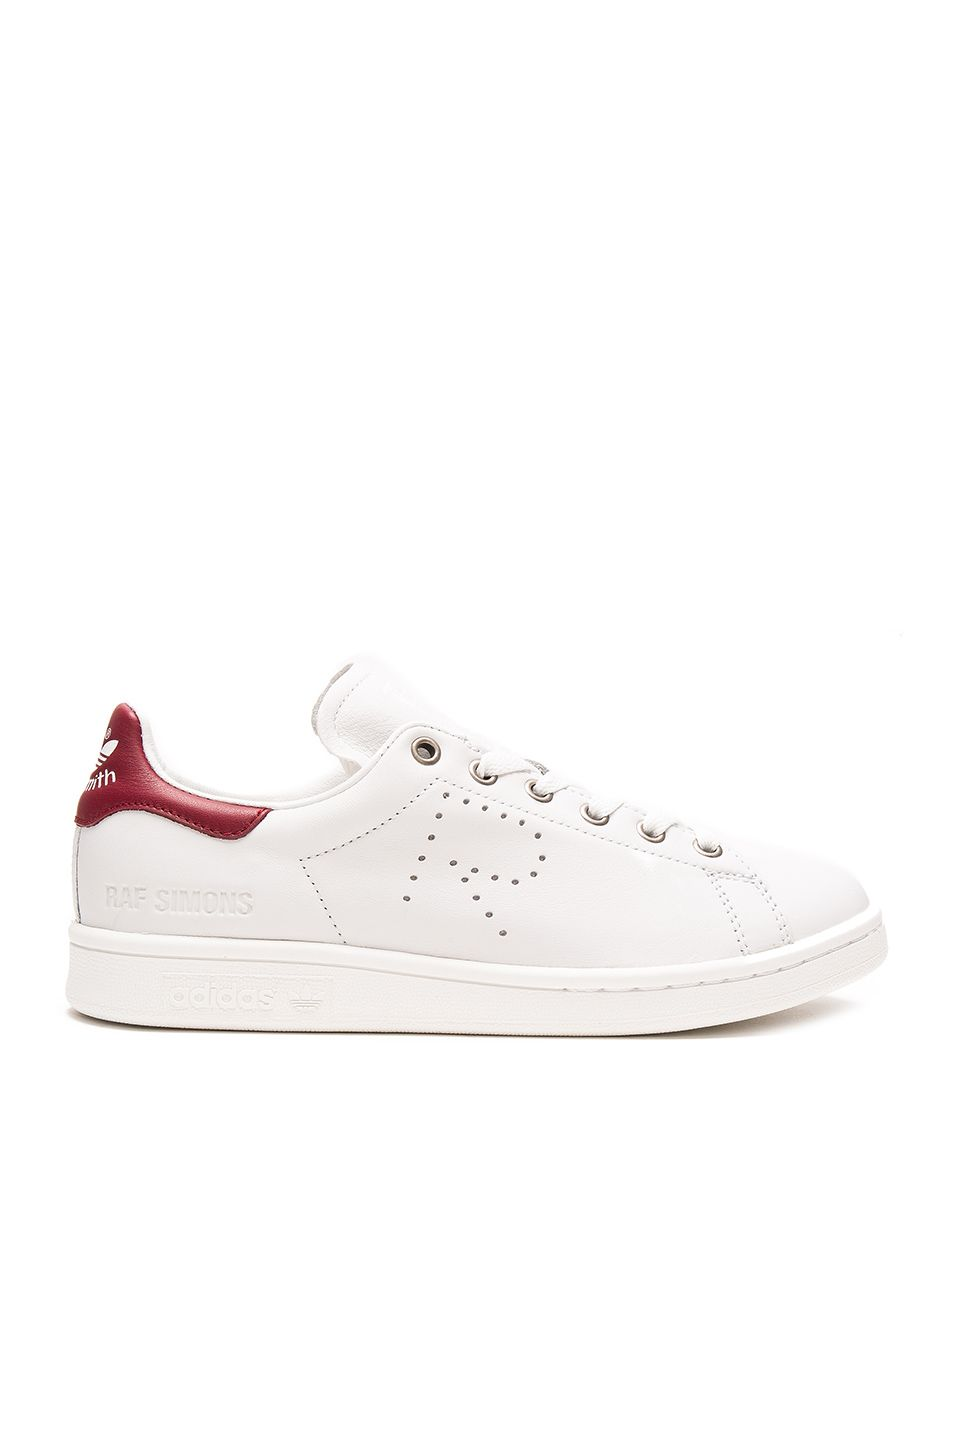 a51c9eb1c88 adidas by Raf Simons Stan Smith Sneaker in Vintage White   Collegiate  Burgundy